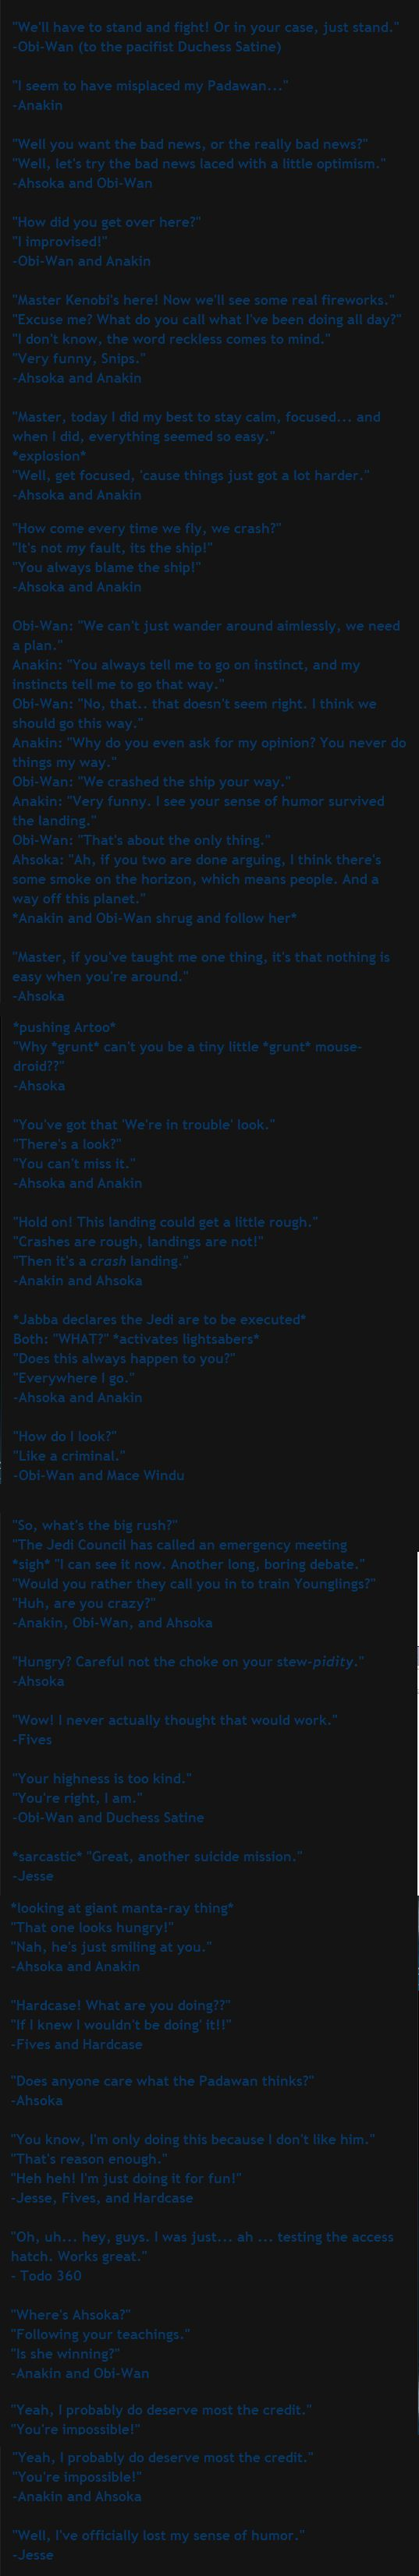 """Clone Wars quotes."" <- haha, where did this come from, this is my list I had on a google blog forever ago xD Still obsessed as ever with Star Wars and quotes. This is a look into my sense of humor, ladies and gentlemen."